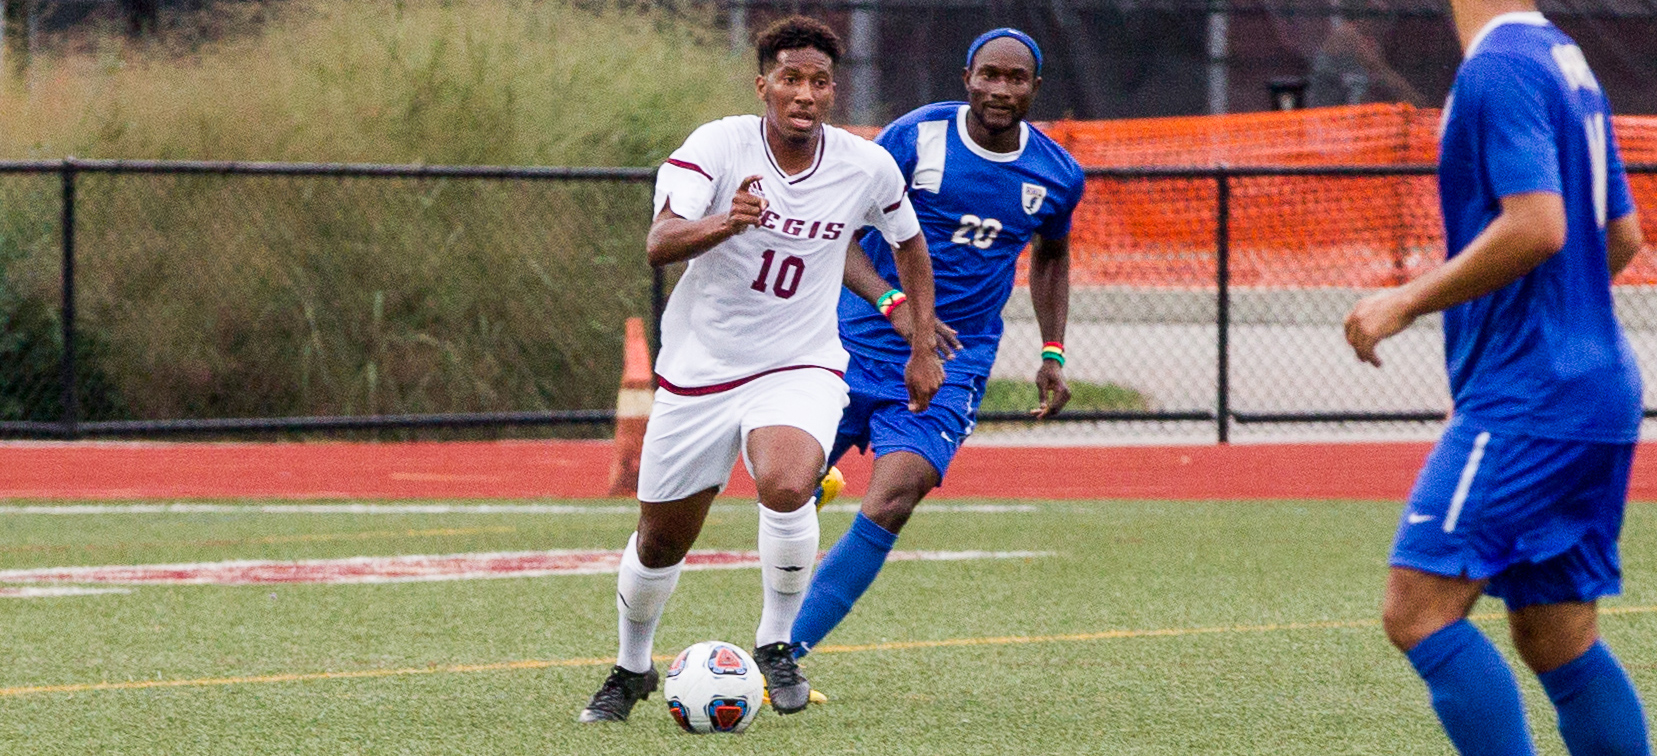 Barbosa Sets New Assist Record, Men's Soccer Tops Rivier In OT